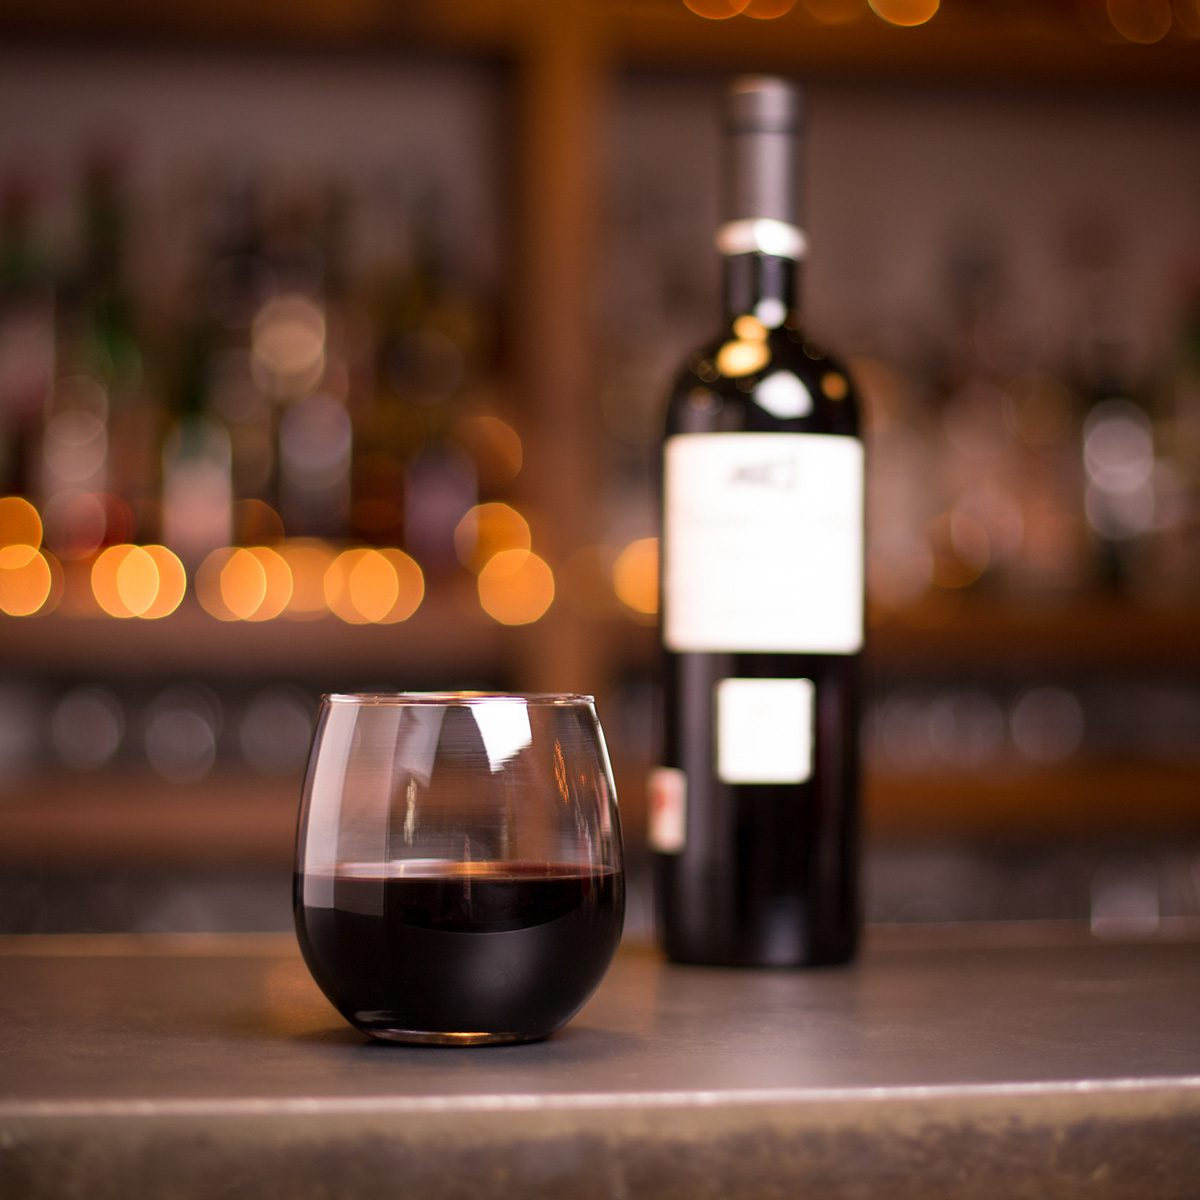 Low angle close up perspective of crystal clear stemless wine glass with traditional round goblet shape filled with rich red wine on metal counter top bar with blurry bottle and restaurant background